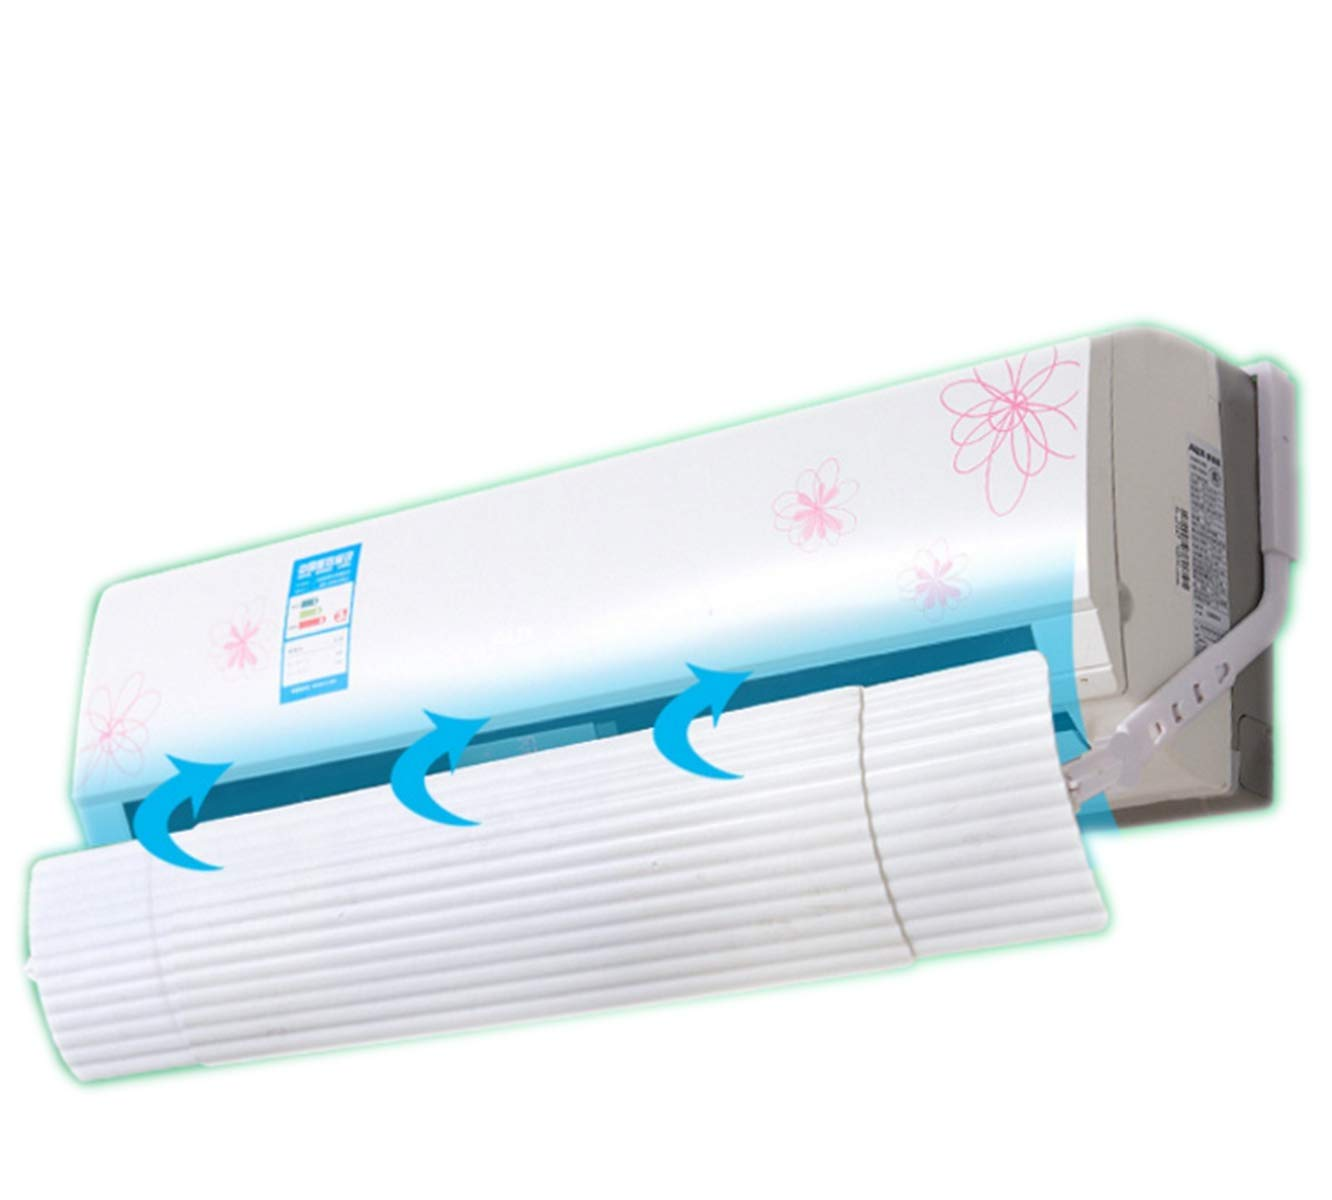 Foldable Air Conditioner Deflector Confinement Air Deflector Outlet Air Cooled Anti Blast Baffle Wind Direction Telescopic Windshield for Home